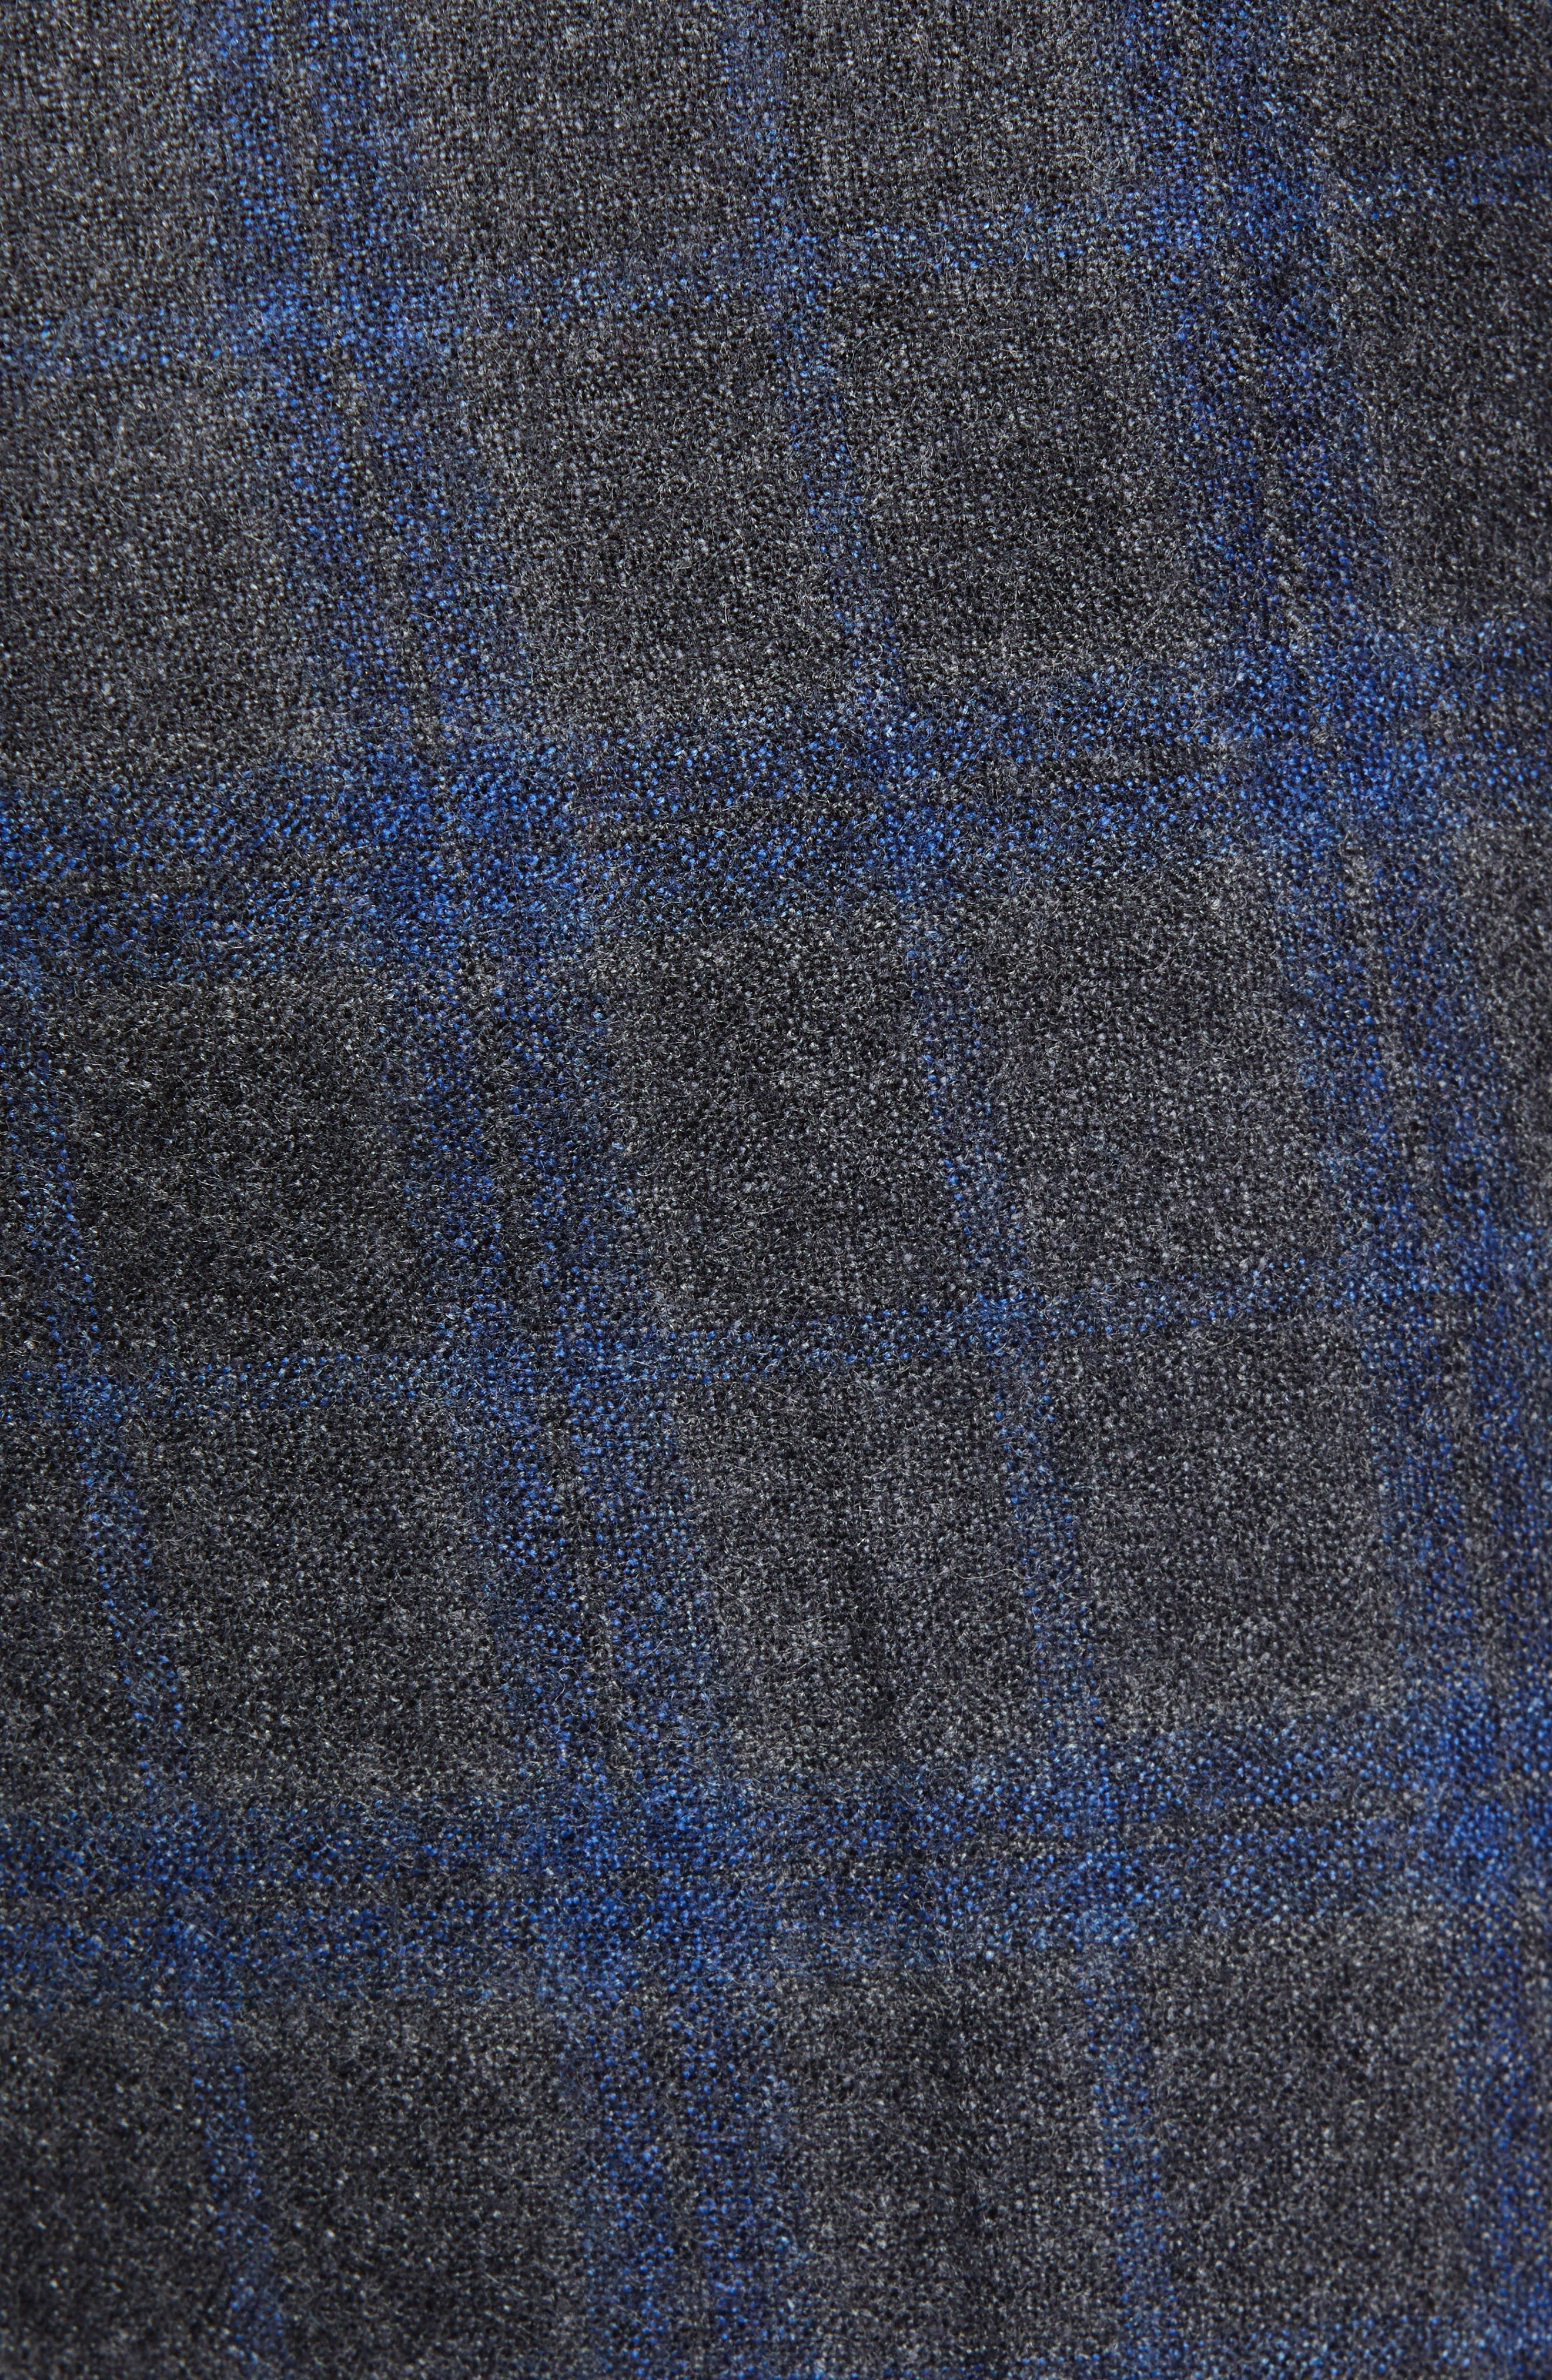 Manufacturing Flat Front Plaid Wool Trousers,                             Alternate thumbnail 5, color,                             021